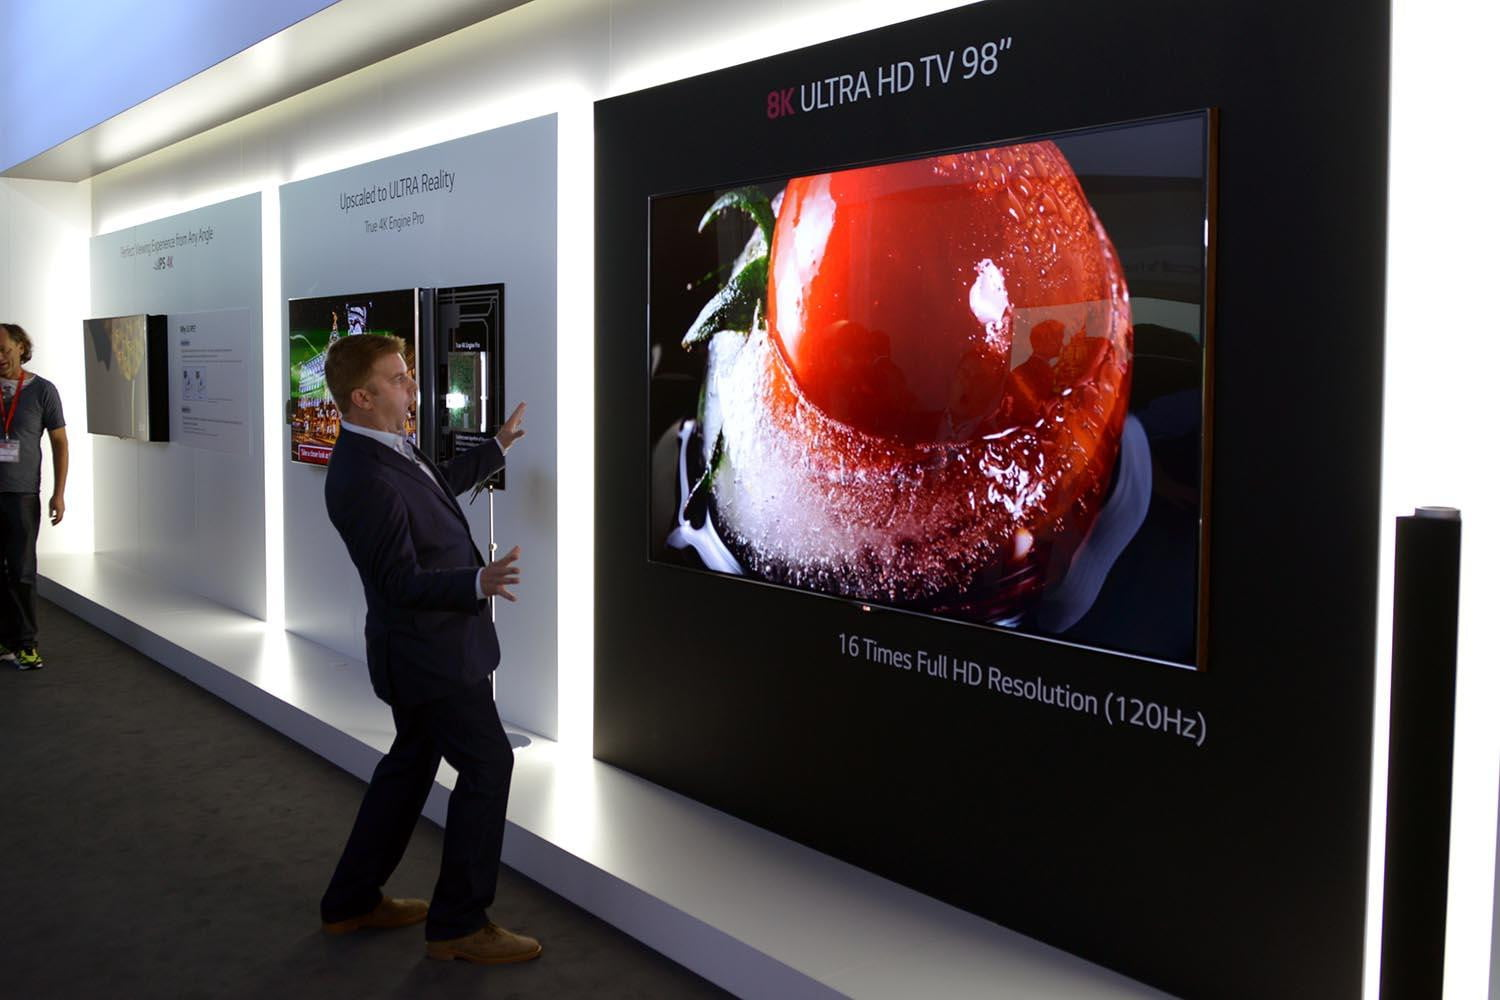 LG' new Super UHD TV lineup includes 98-inch 8K monster